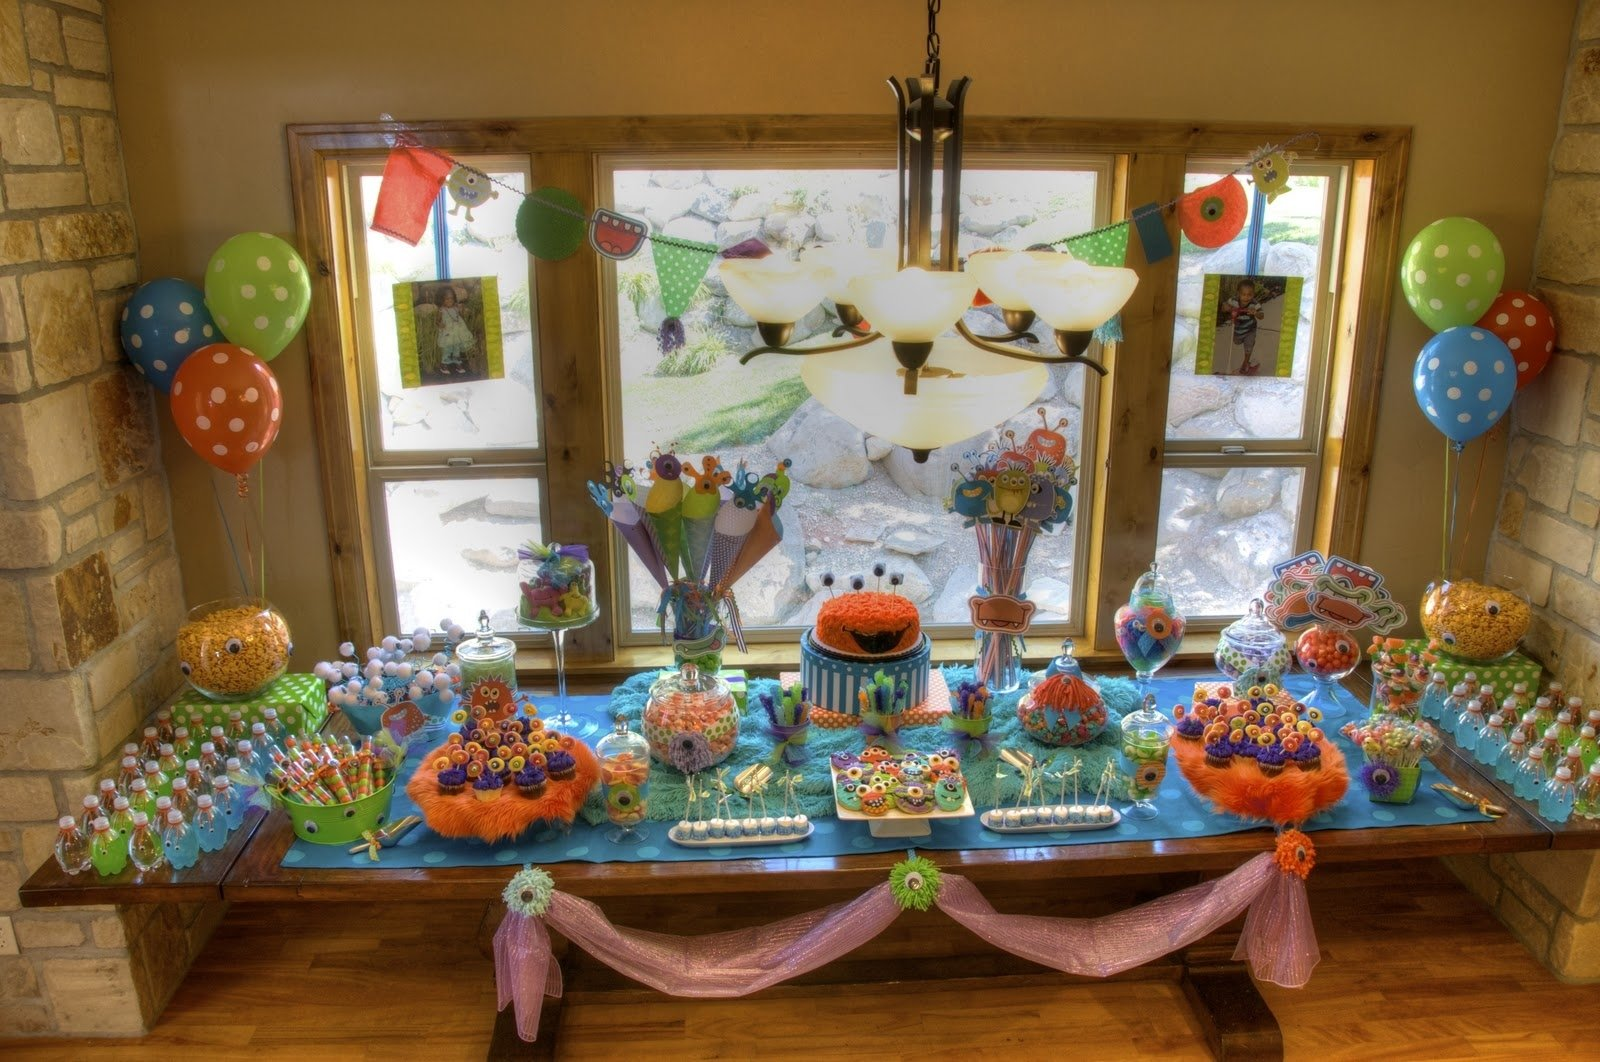 10 Lovable Party Ideas For A 2 Year Old cute year birthday party ideas entertainment ideas for visit 53 2020